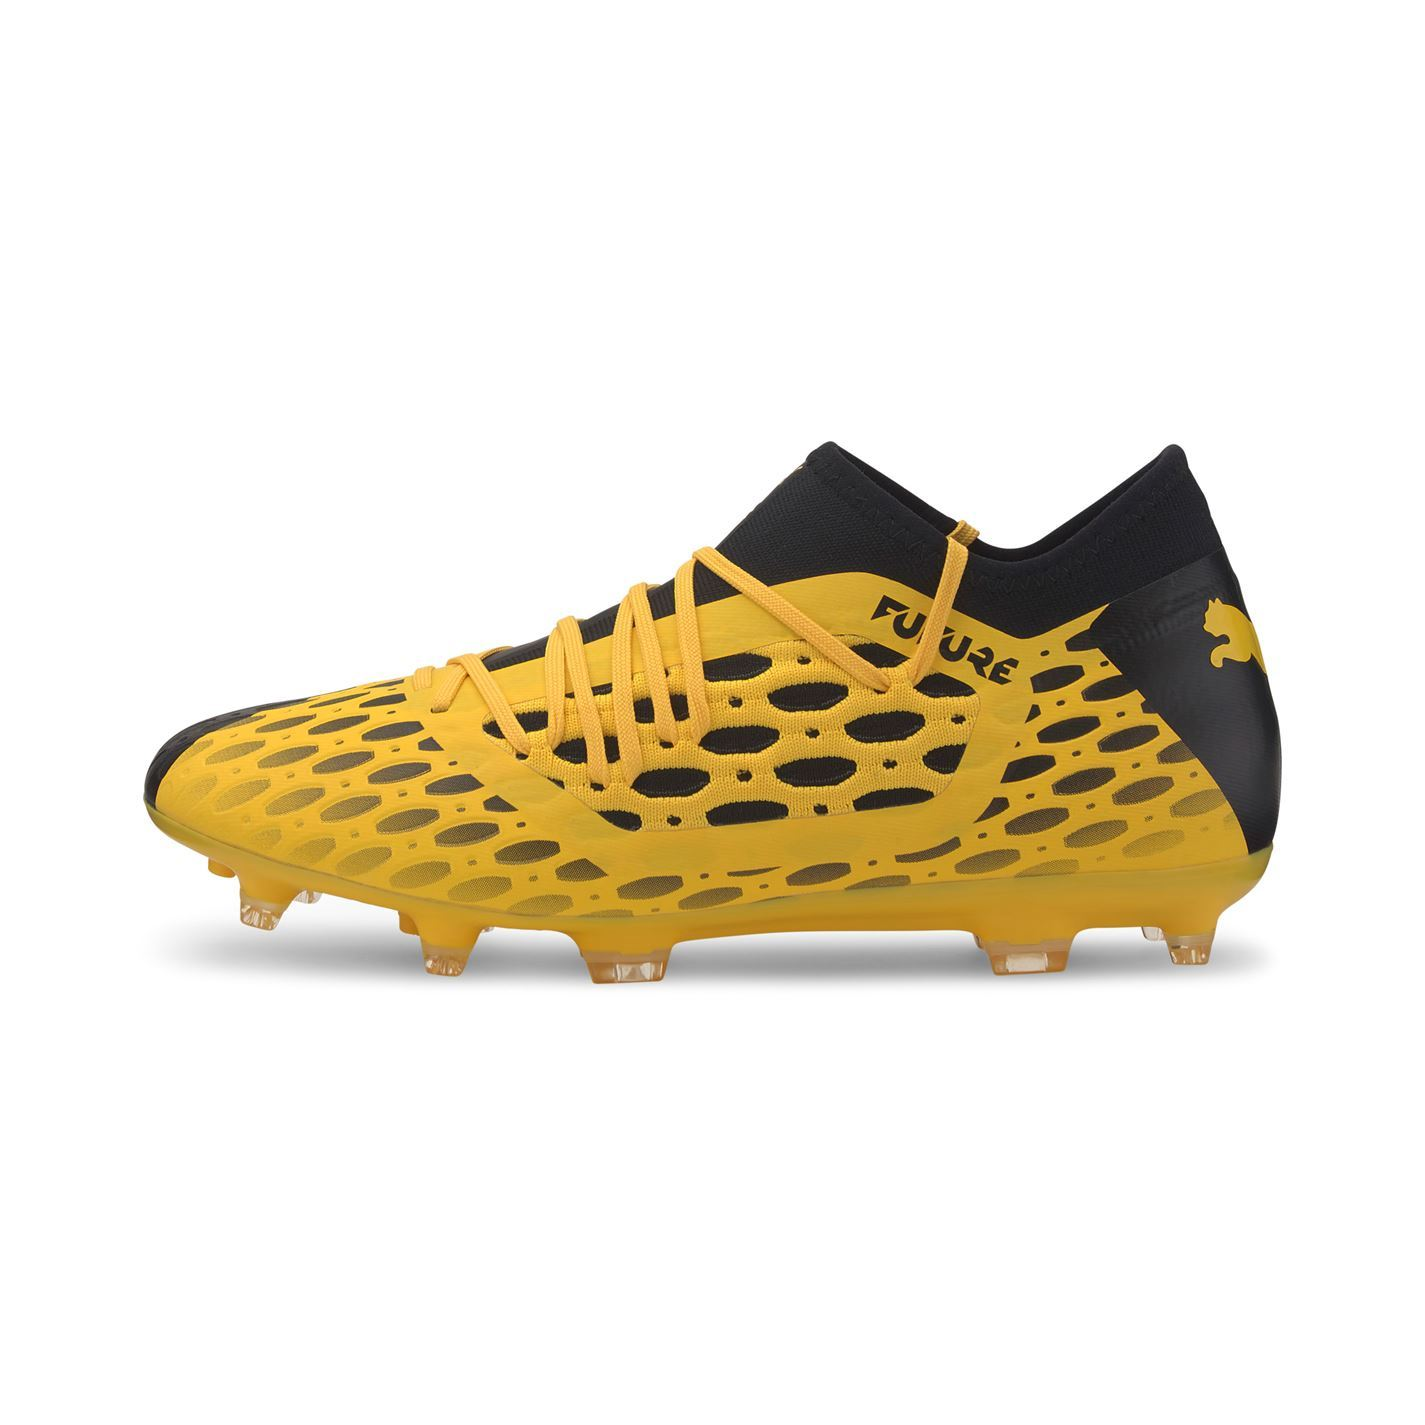 miniature 5 - Puma Future 5.3 Homme FG Firm Ground Chaussures De Football Chaussures de Foot Crampons Baskets